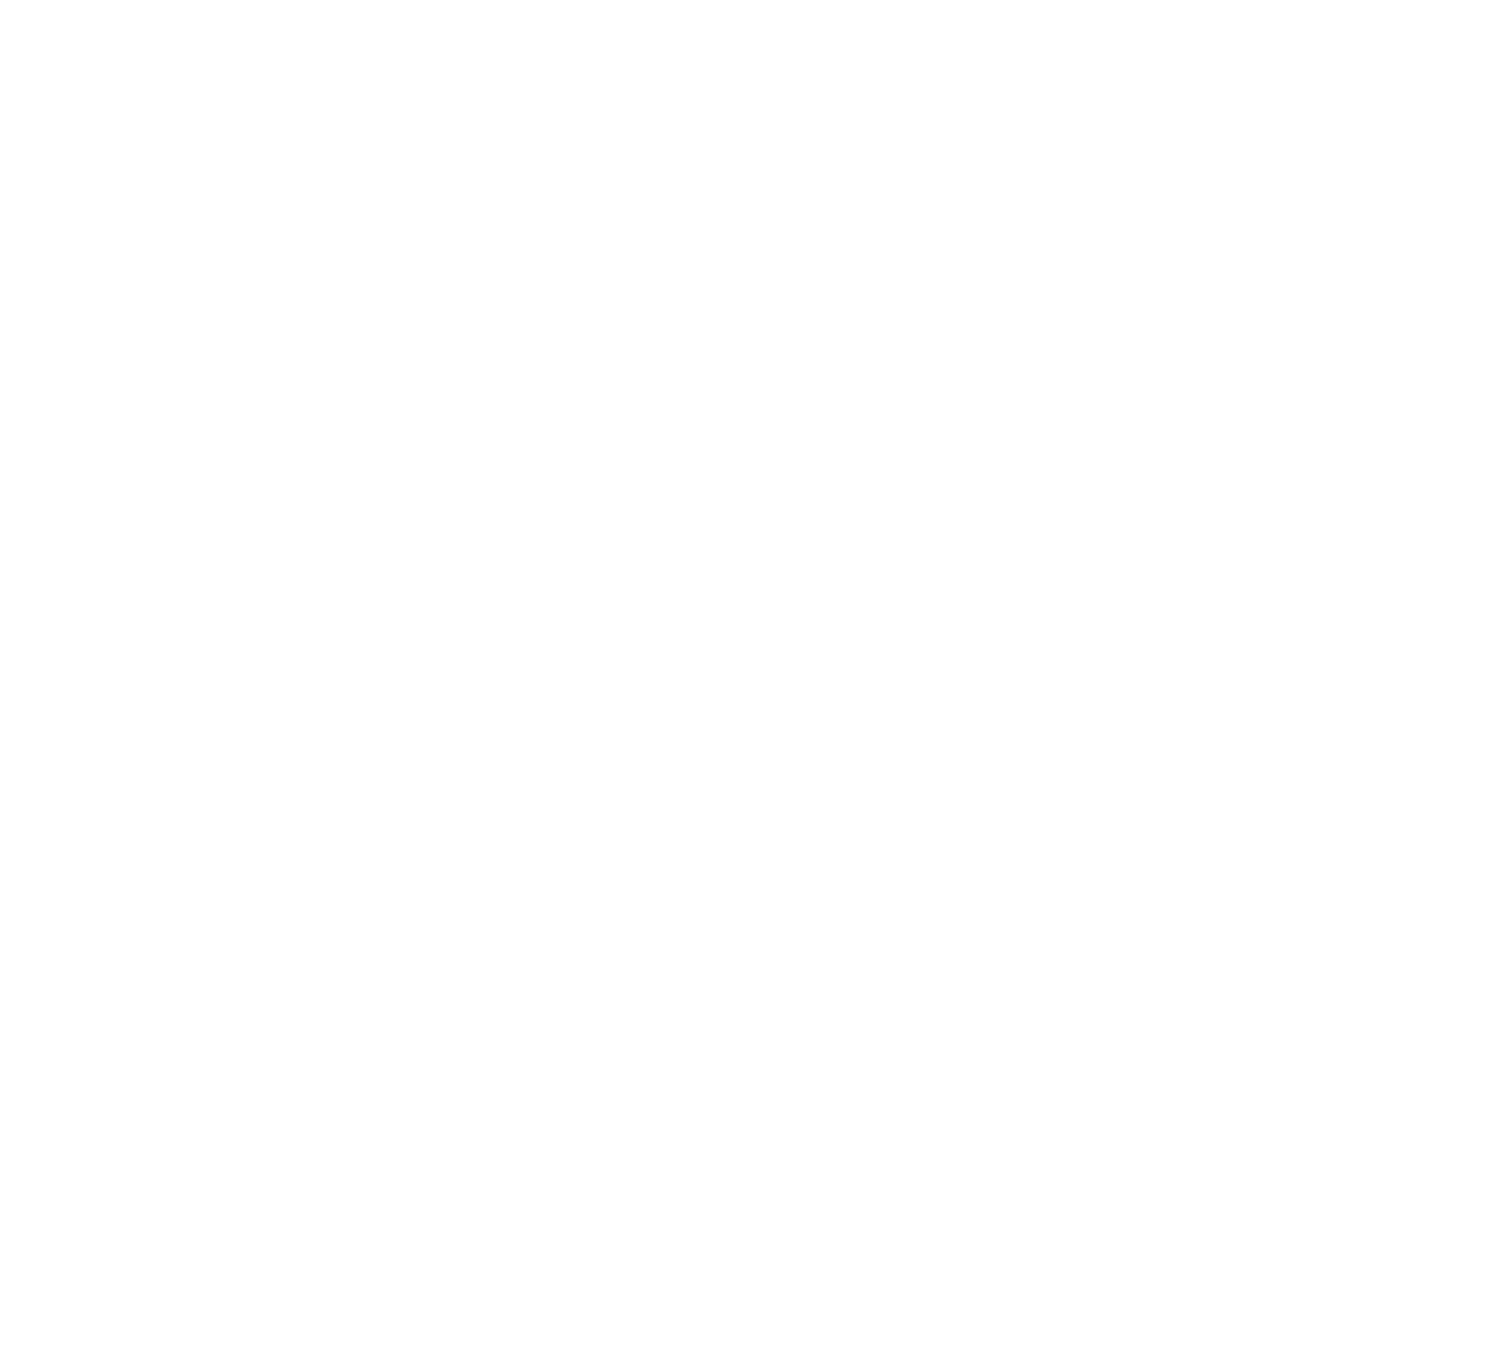 Wyken Croft Primary School